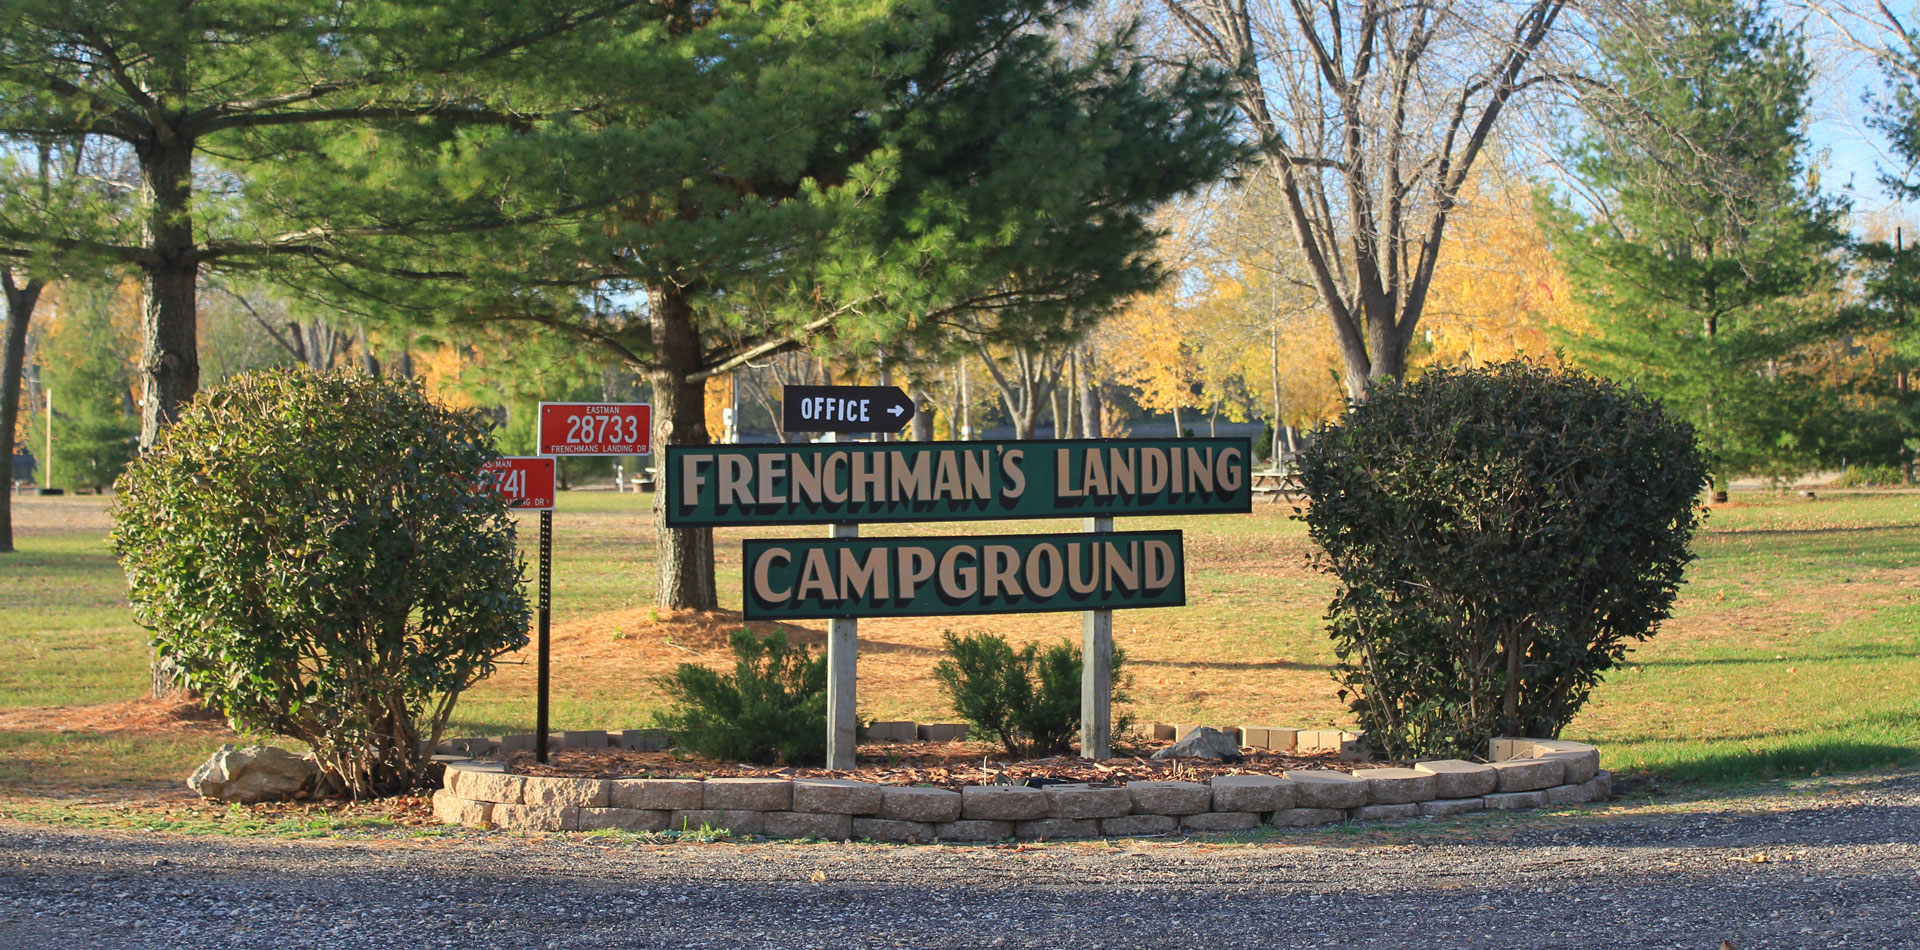 Frenchman's Landing Campground banner image